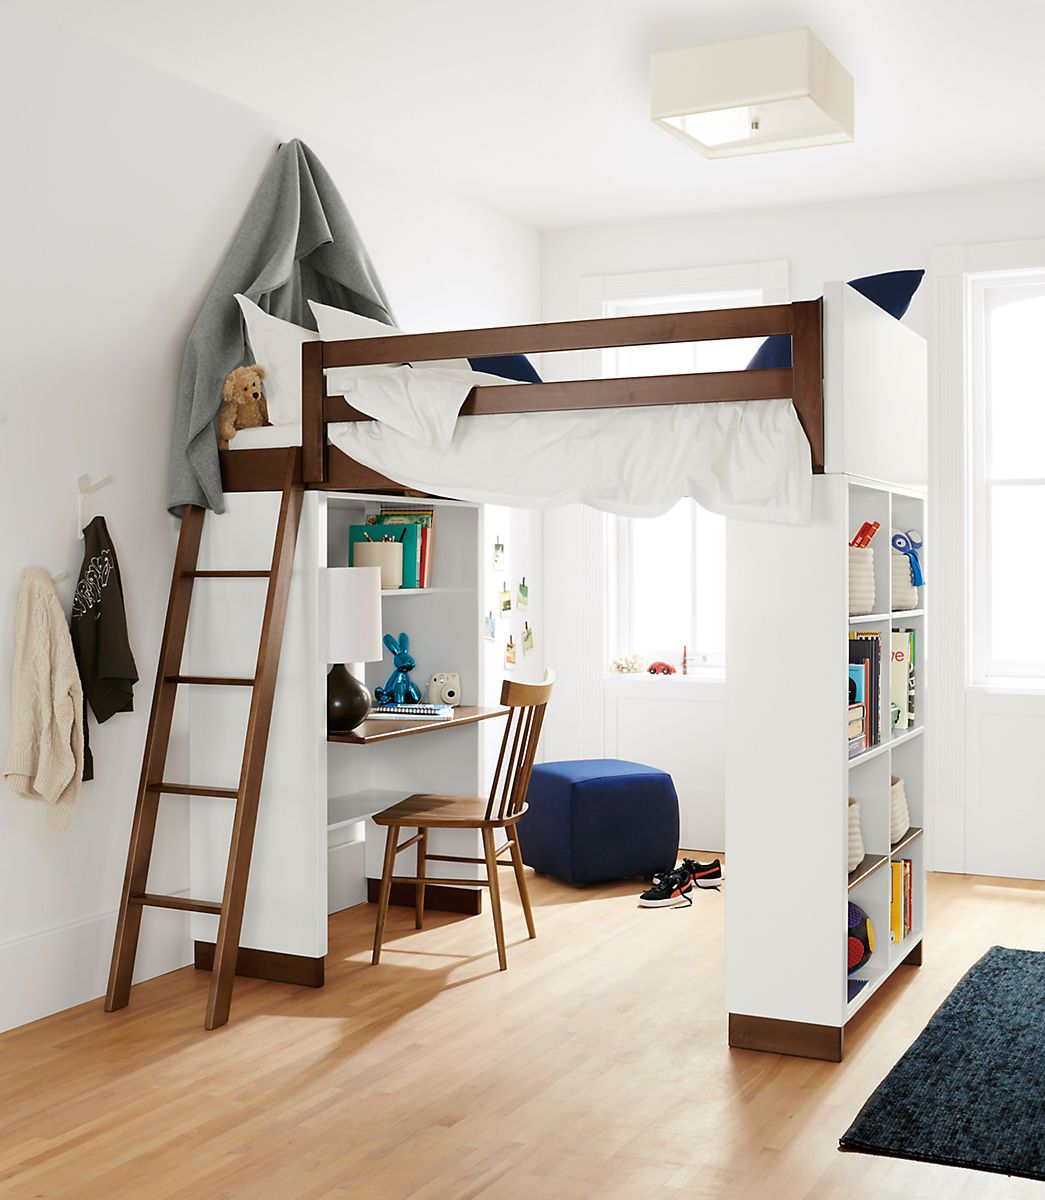 moda loft beds with desk and bookcase options. Black Bedroom Furniture Sets. Home Design Ideas